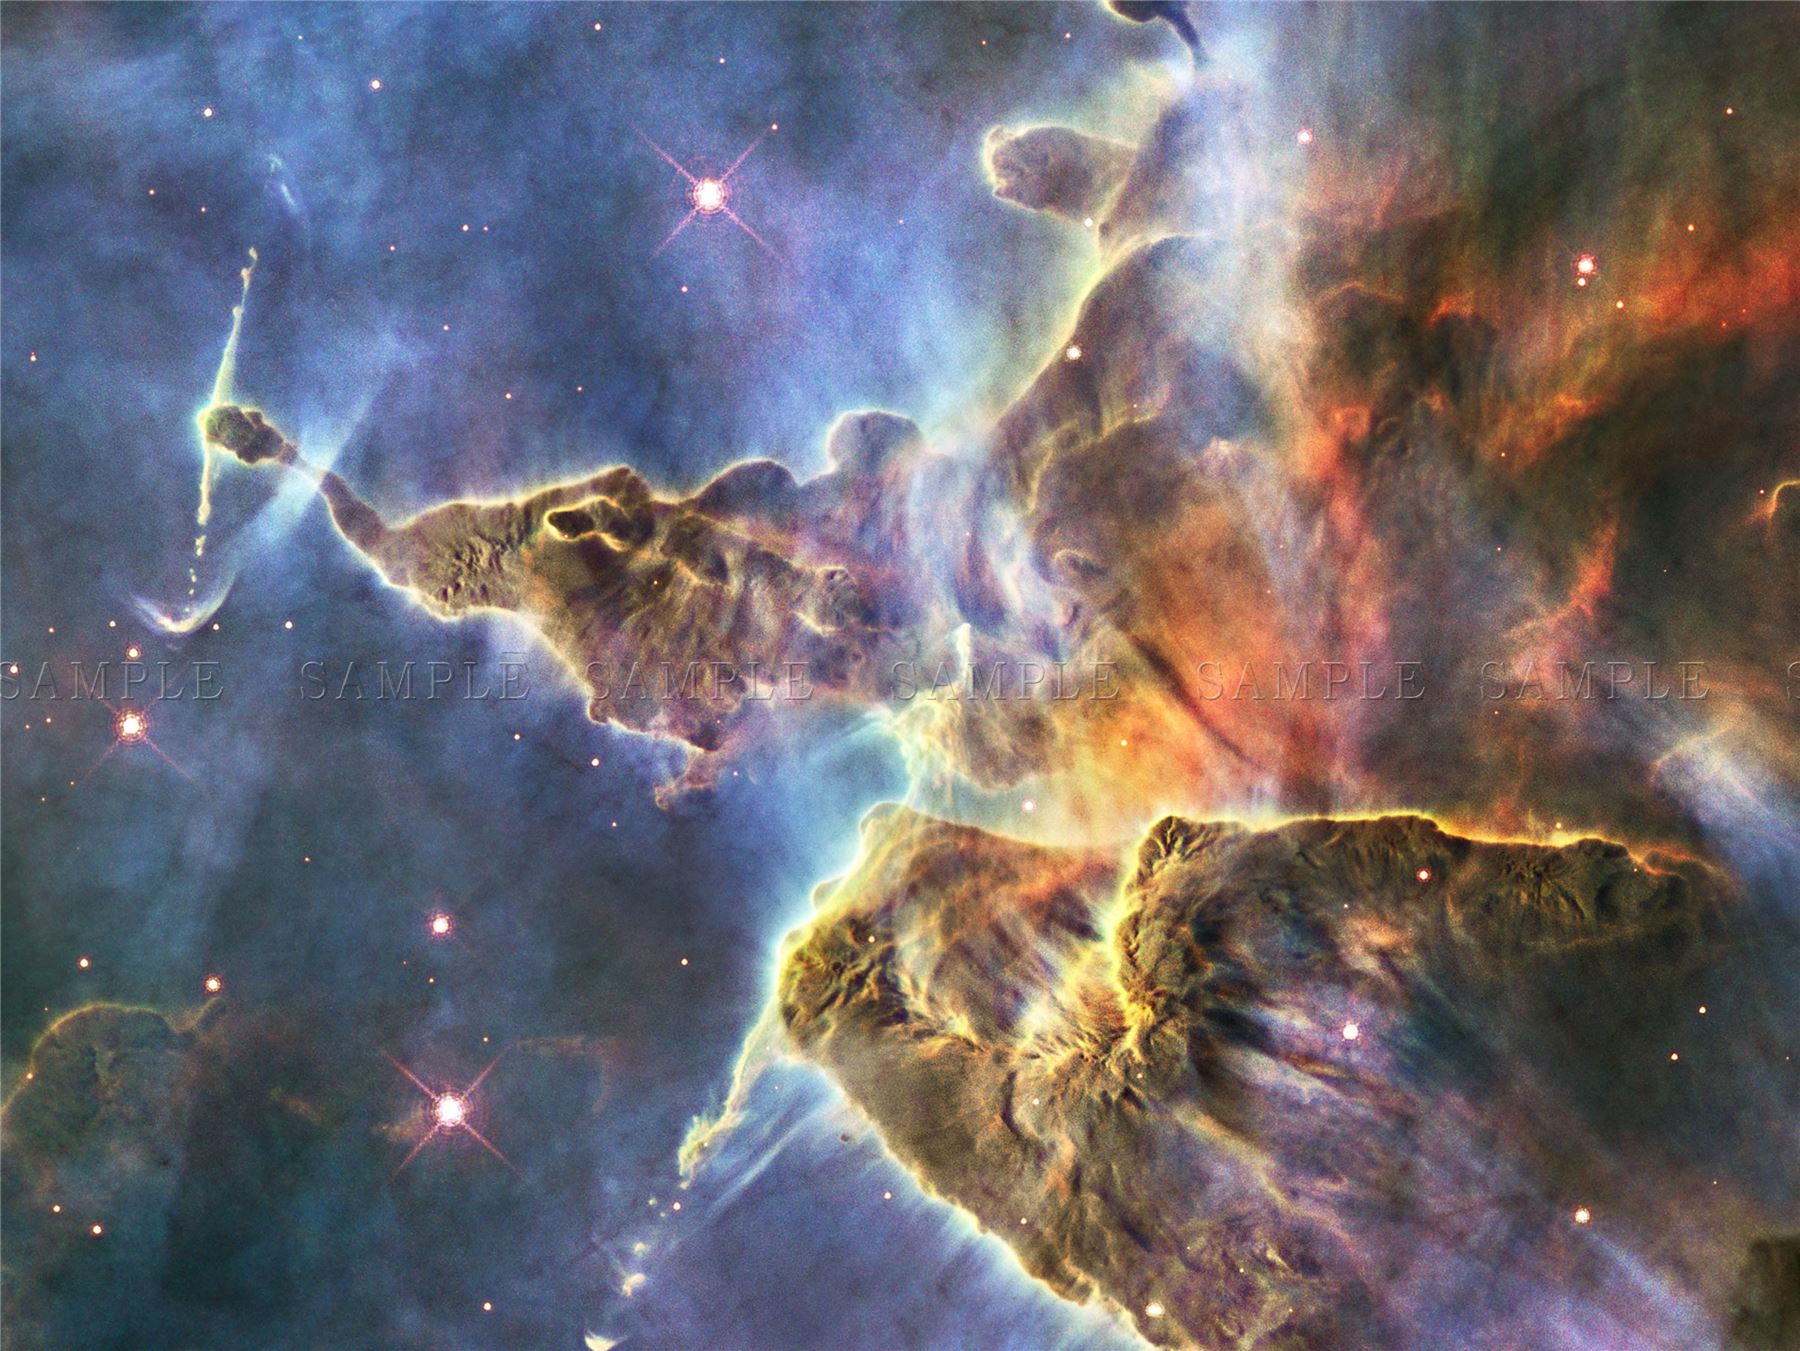 galaxies in the universe poster - photo #41